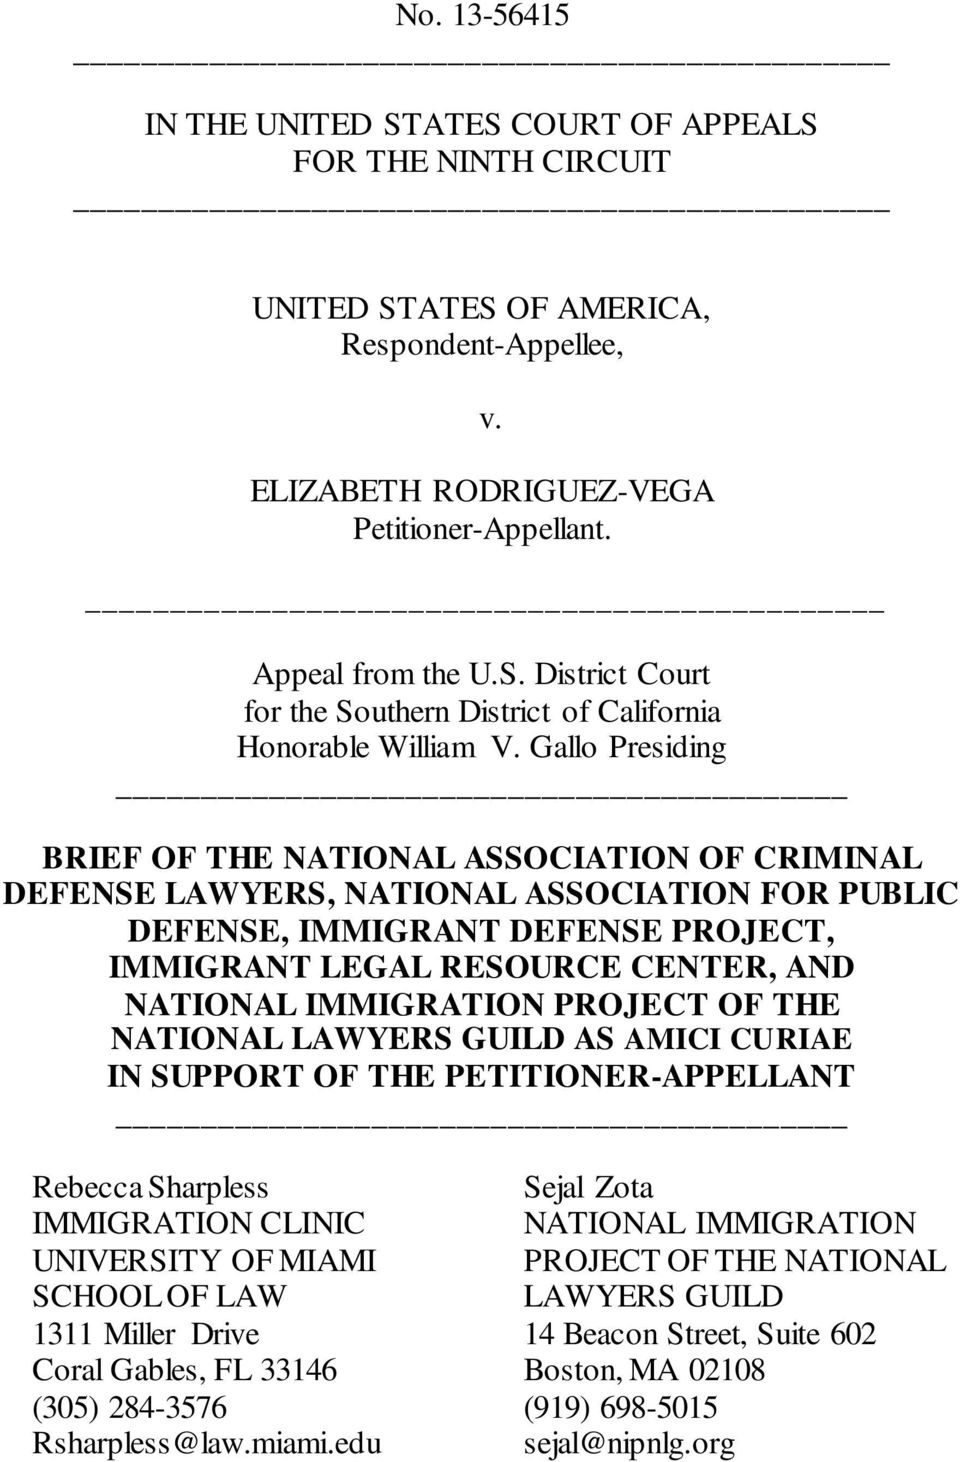 IMMIGRATION PROJECT OF THE NATIONAL LAWYERS GUILD AS AMICI CURIAE IN SUPPORT OF THE PETITIONER-APPELLANT Rebecca Sharpless IMMIGRATION CLINIC UNIVERSITY OF MIAMI SCHOOL OF LAW 1311 Miller Drive Coral